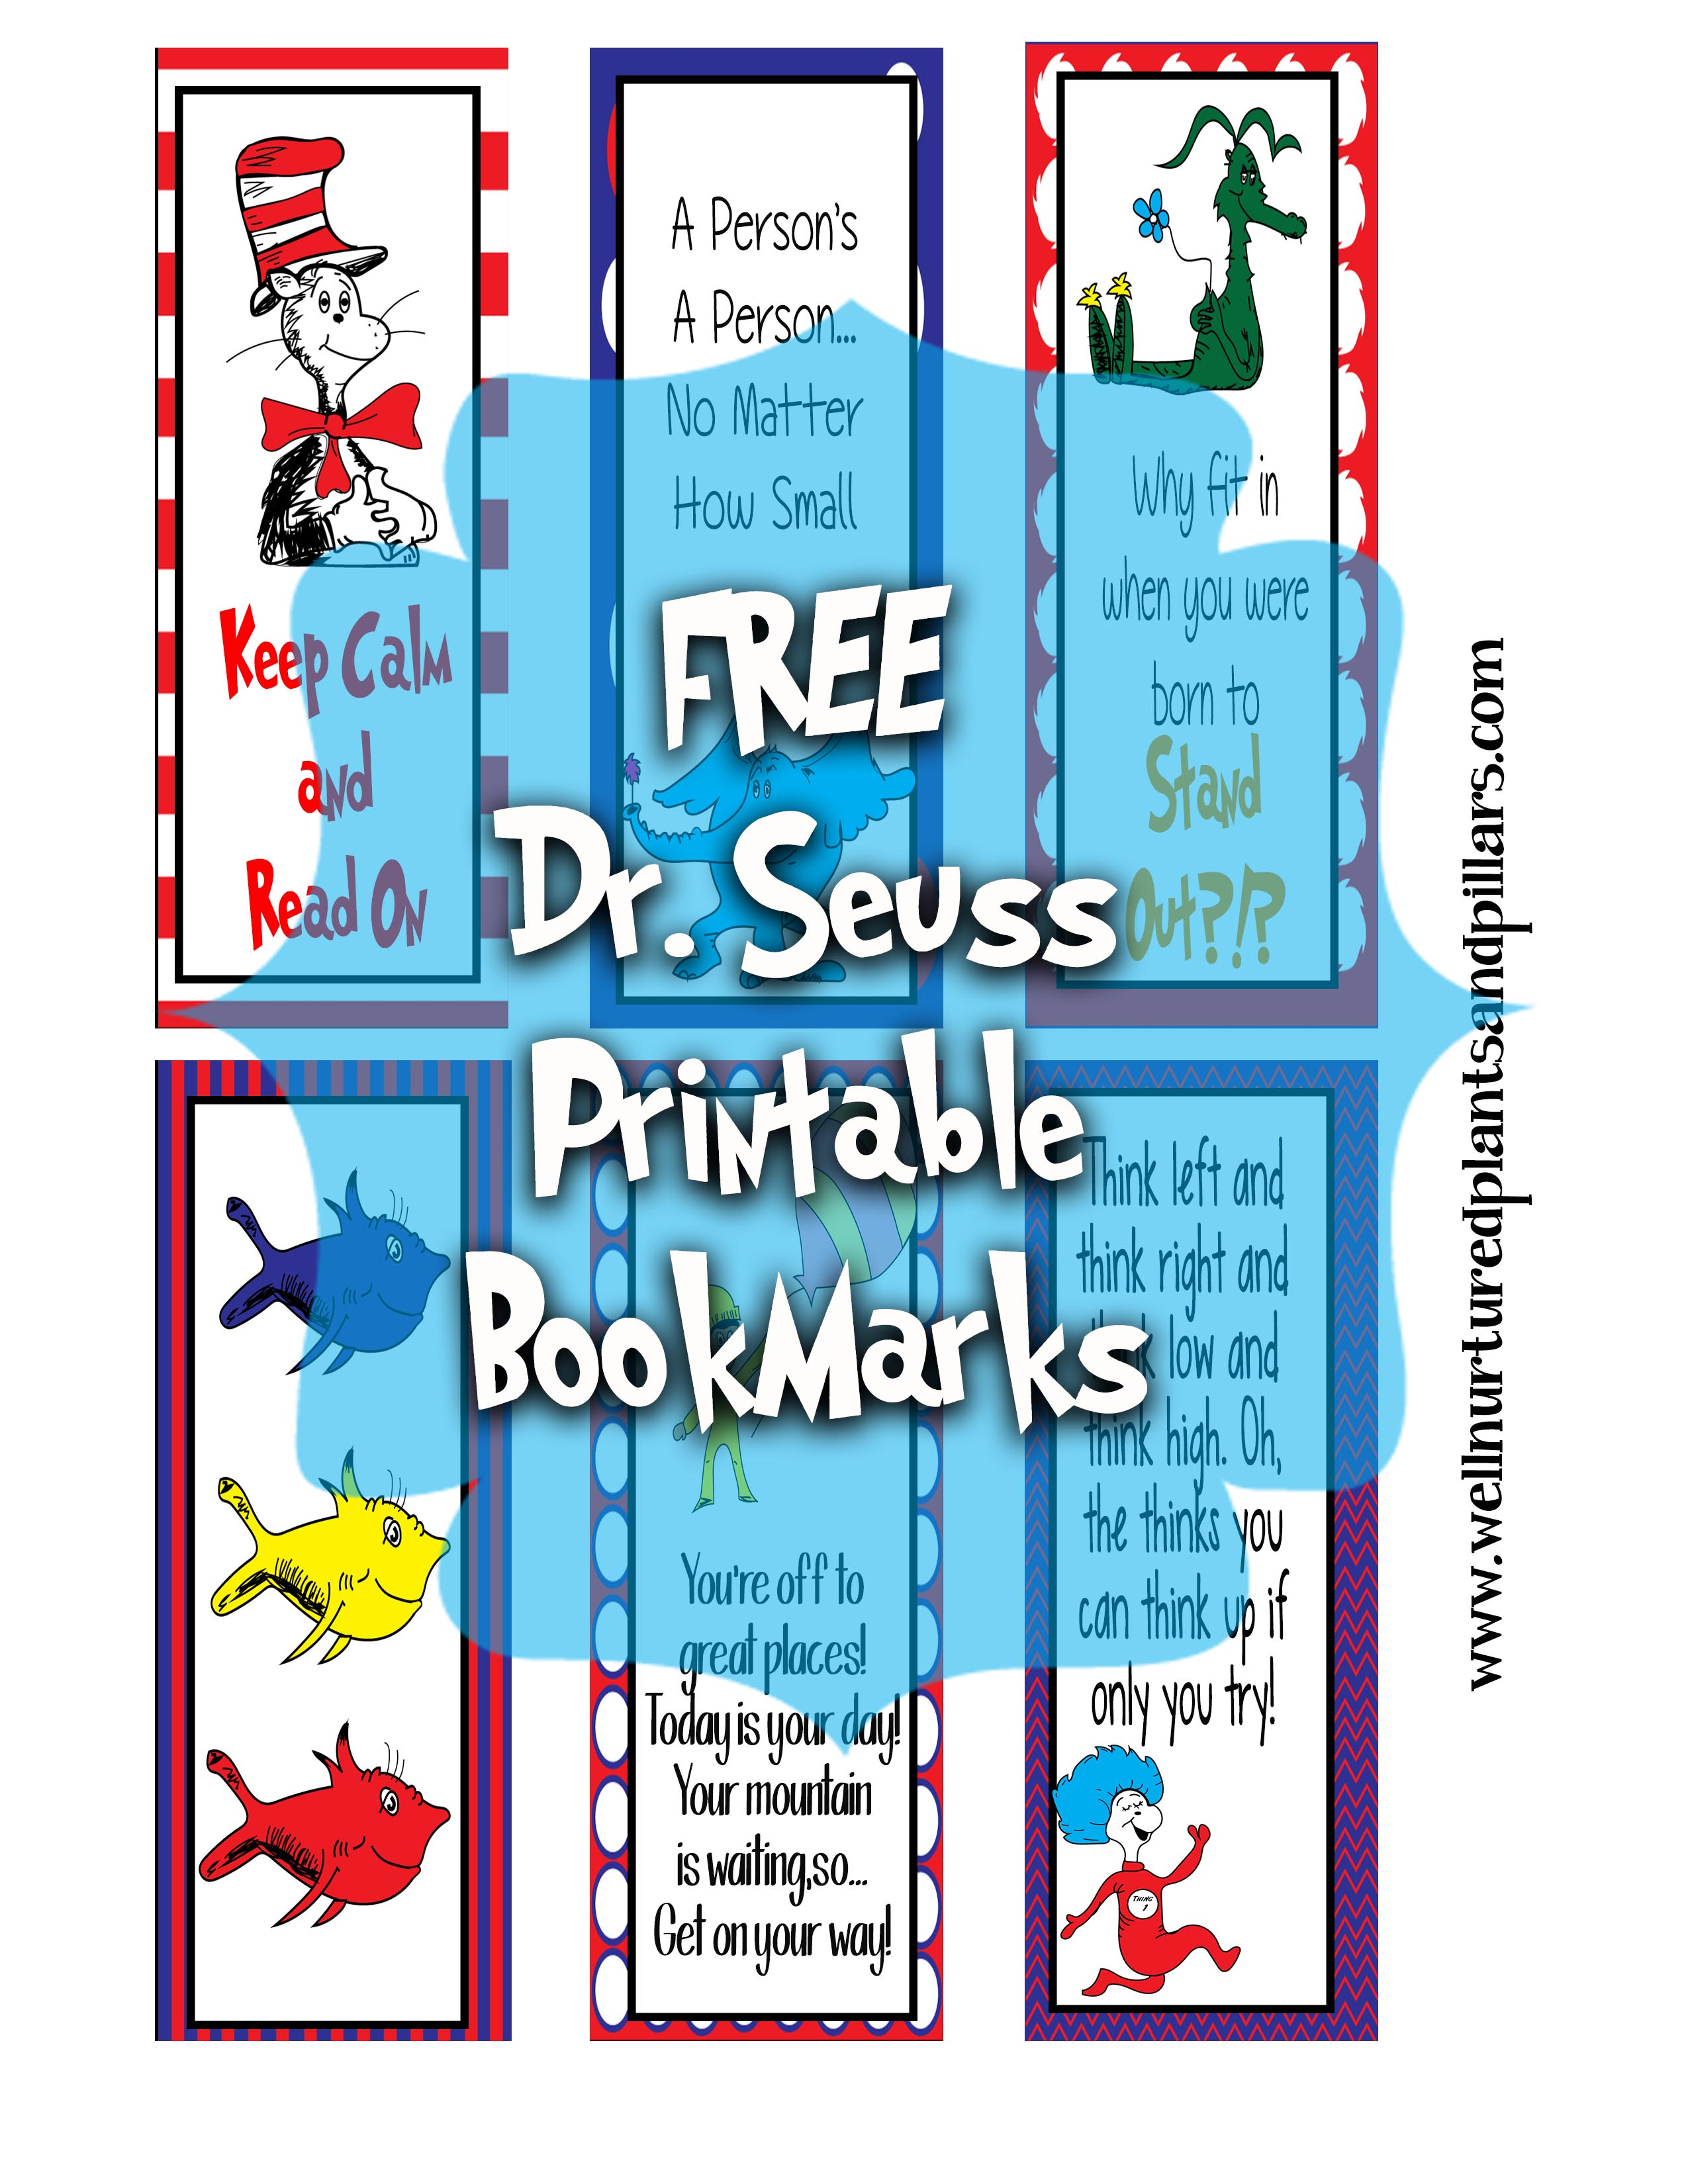 7 Images of Free Printable Dr. Seuss Bookmarks